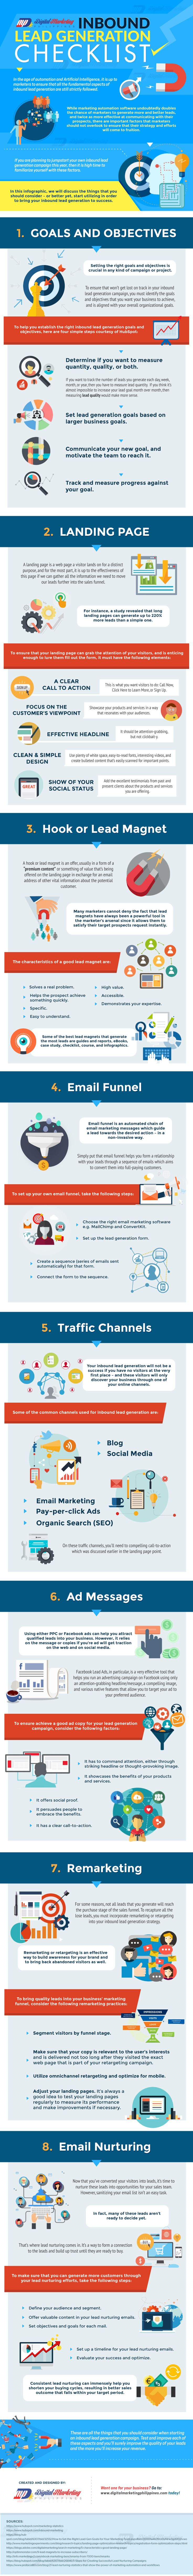 Inbound Marketing for Beginners: 8 Step Checklist to Generate Leads [Infographic] - http://topseosoft.com/inbound-marketing-for-beginners-8-step-checklist-to-generate-leads-infographic/